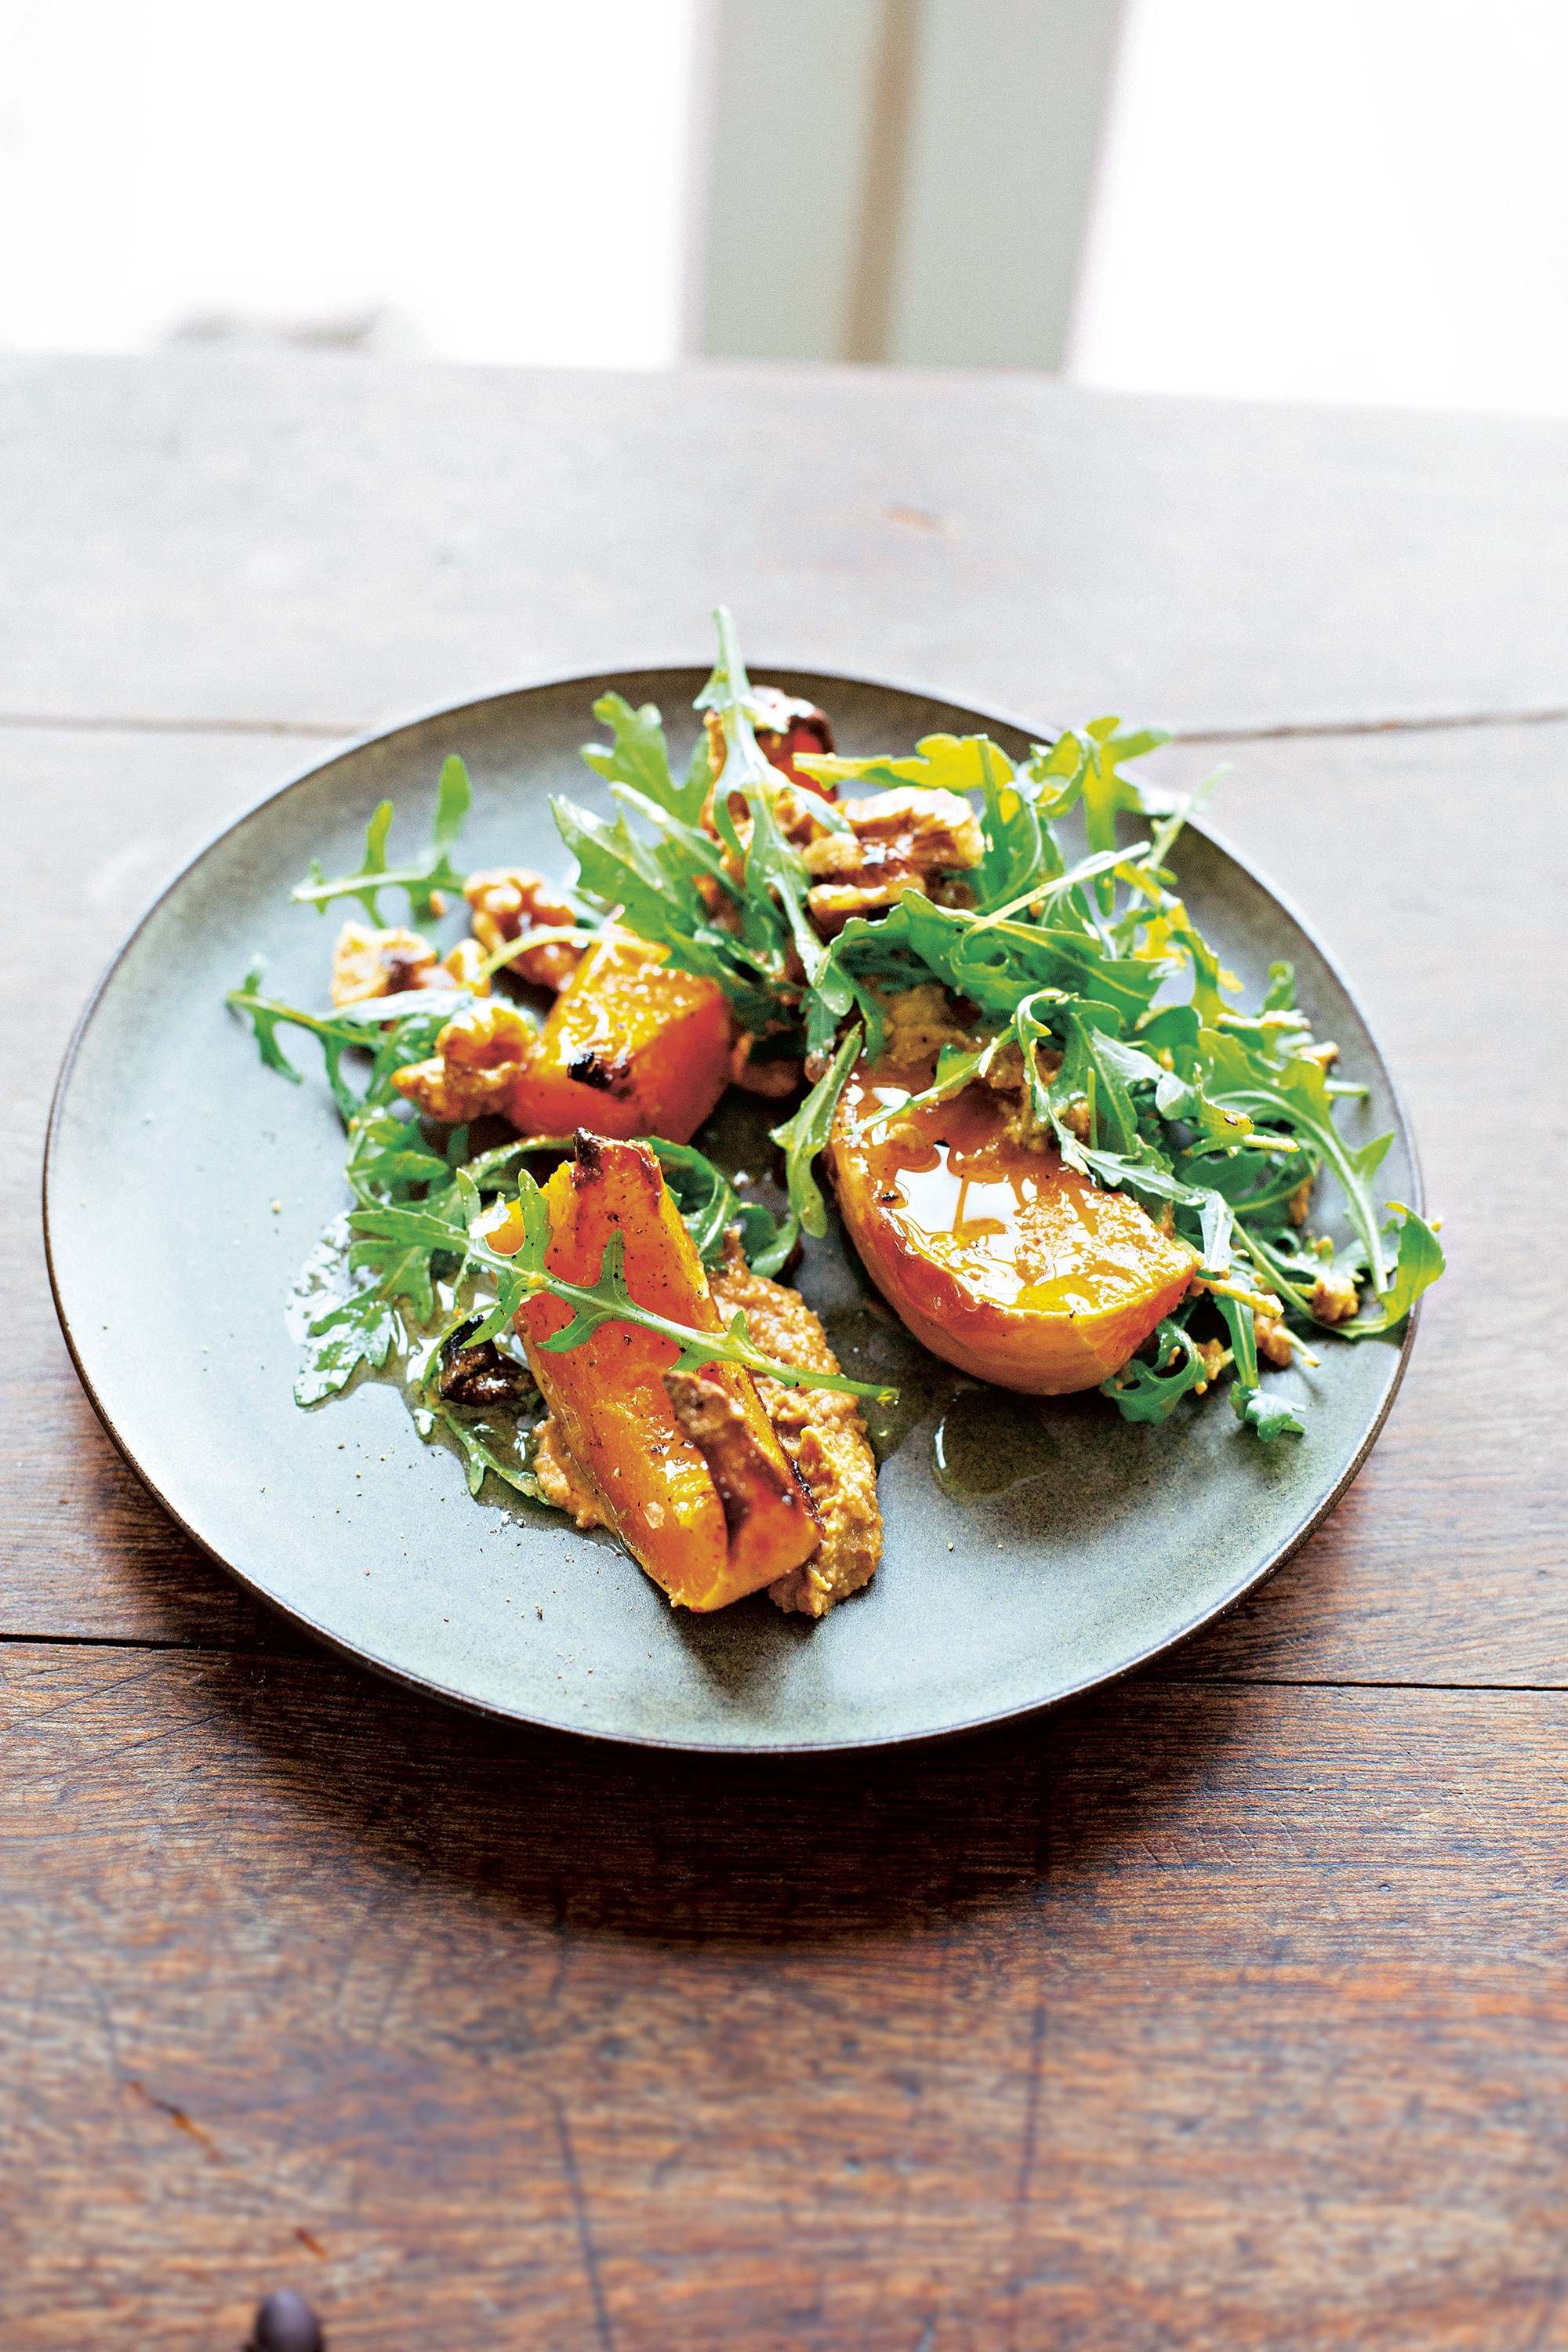 Roast squash and walnuts, two ways